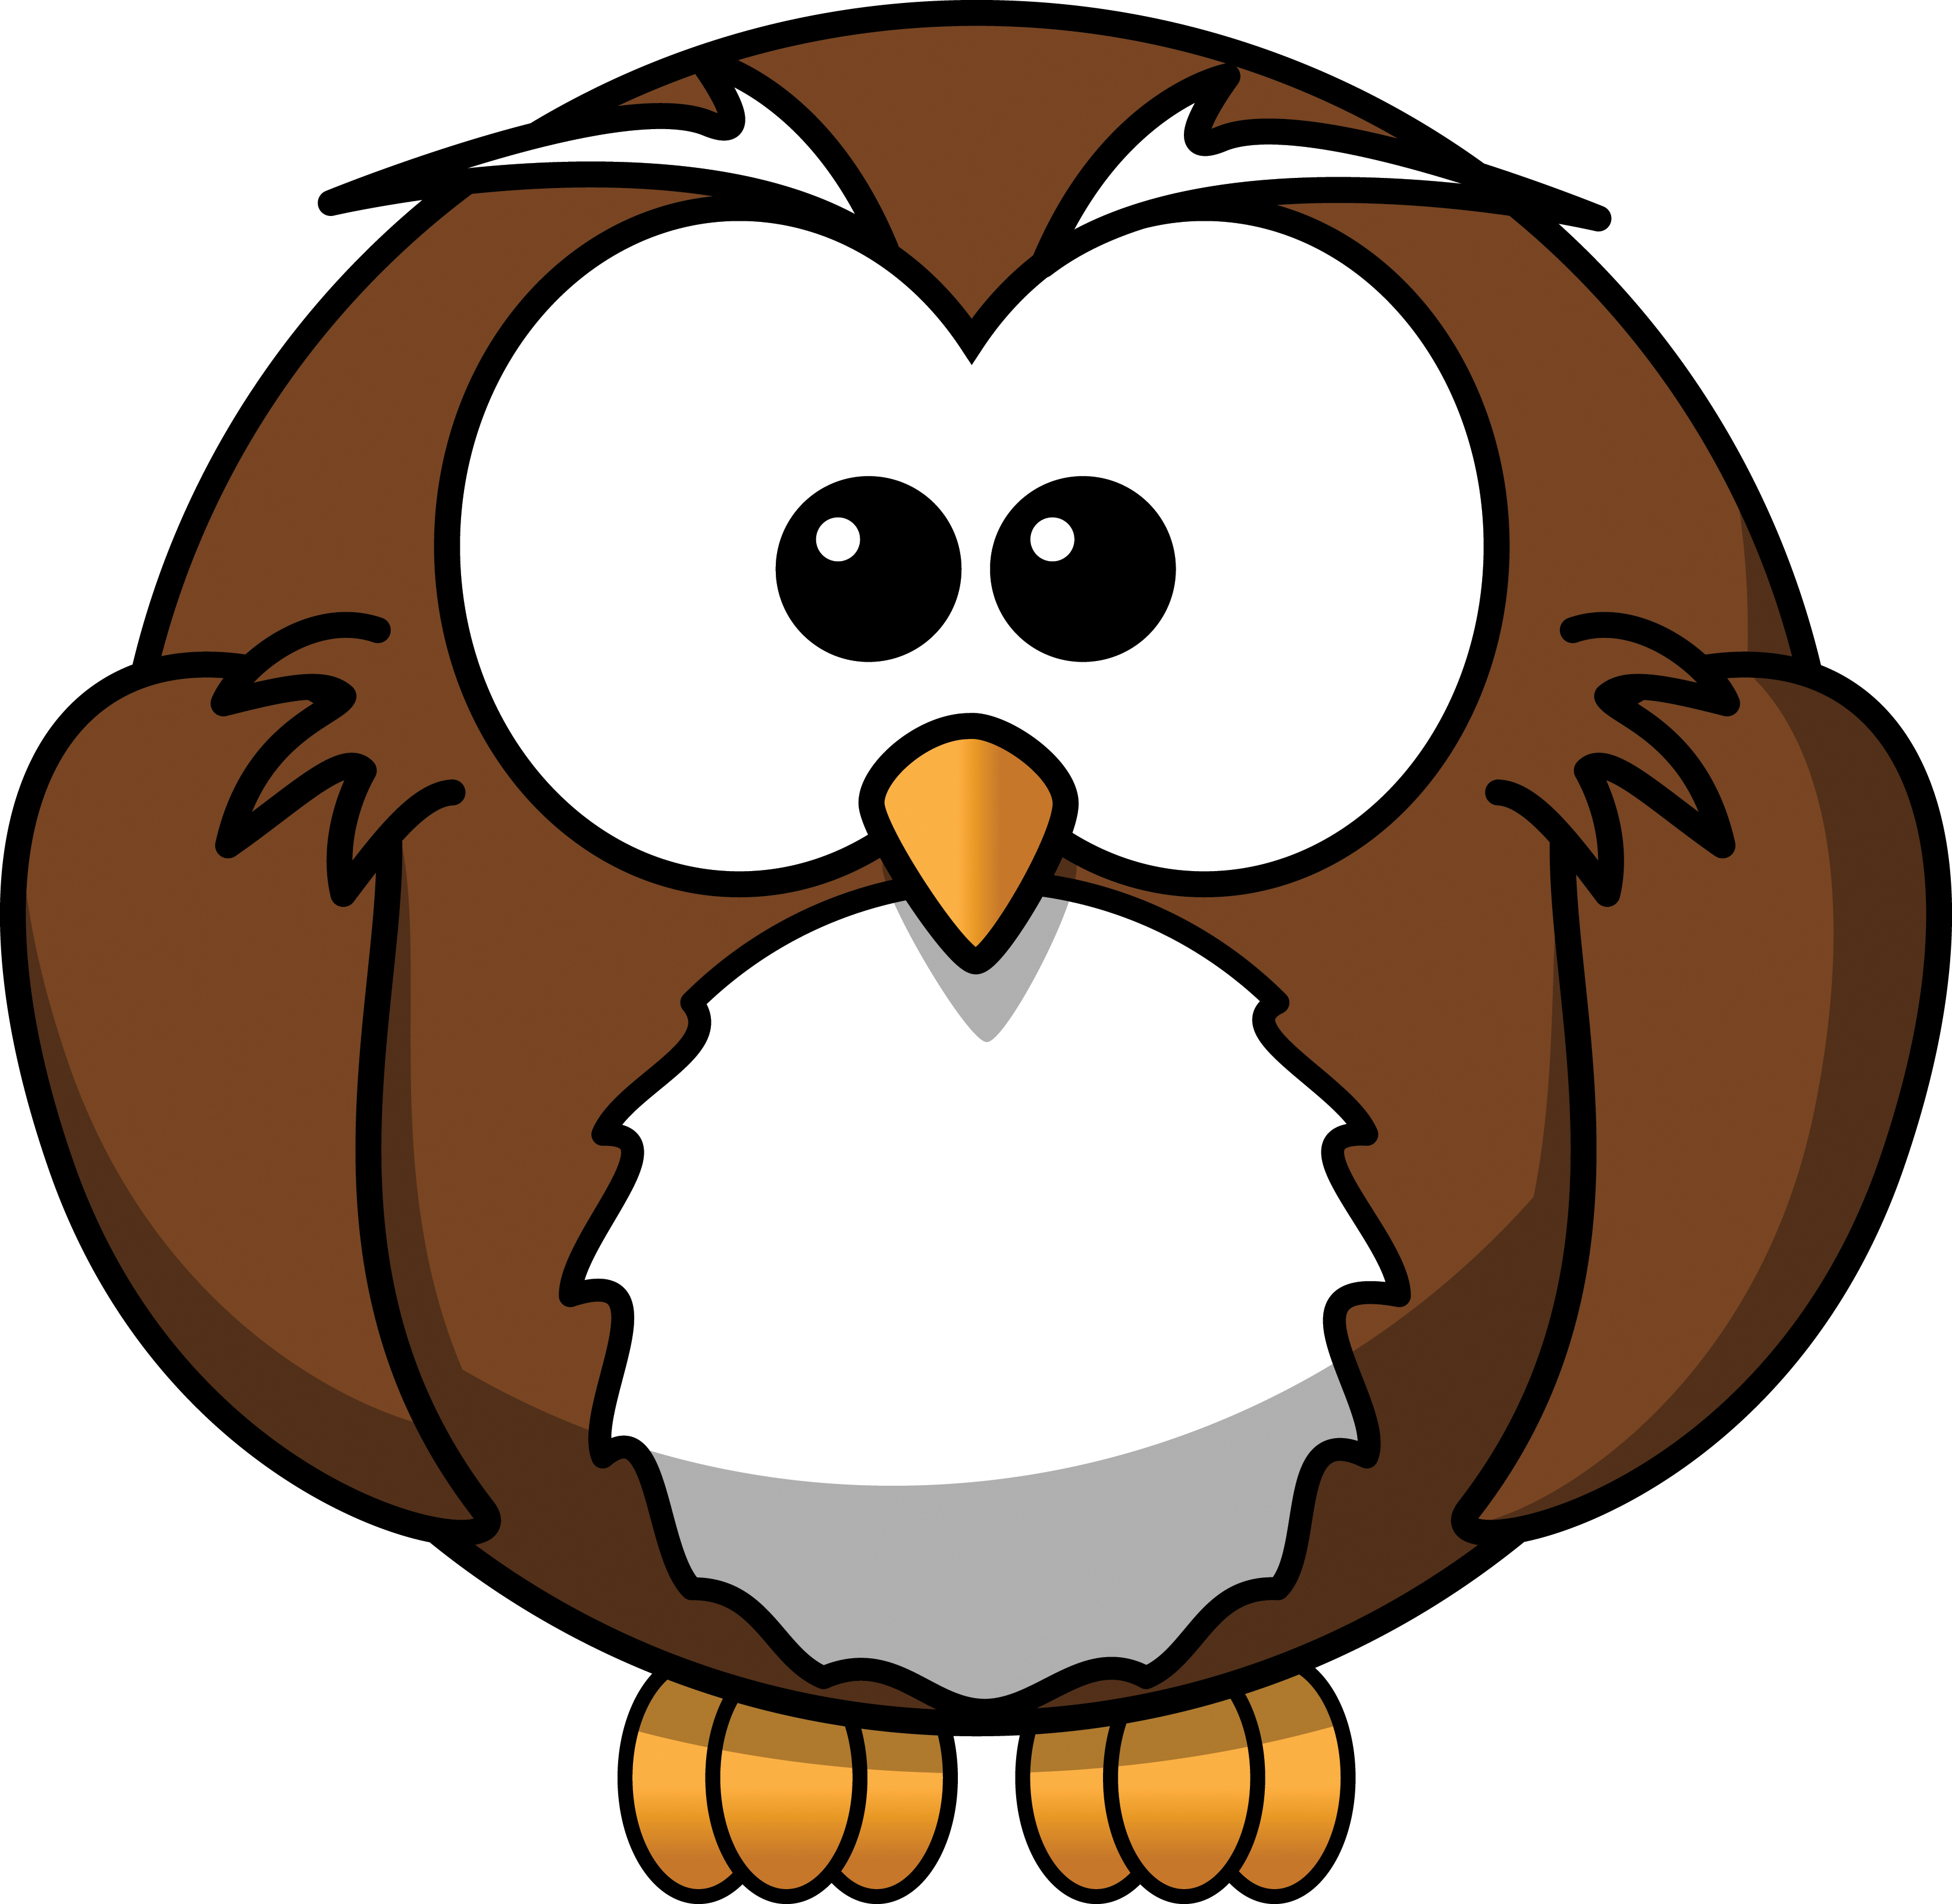 Free Cartoon Owl Clipart by 0001176 .